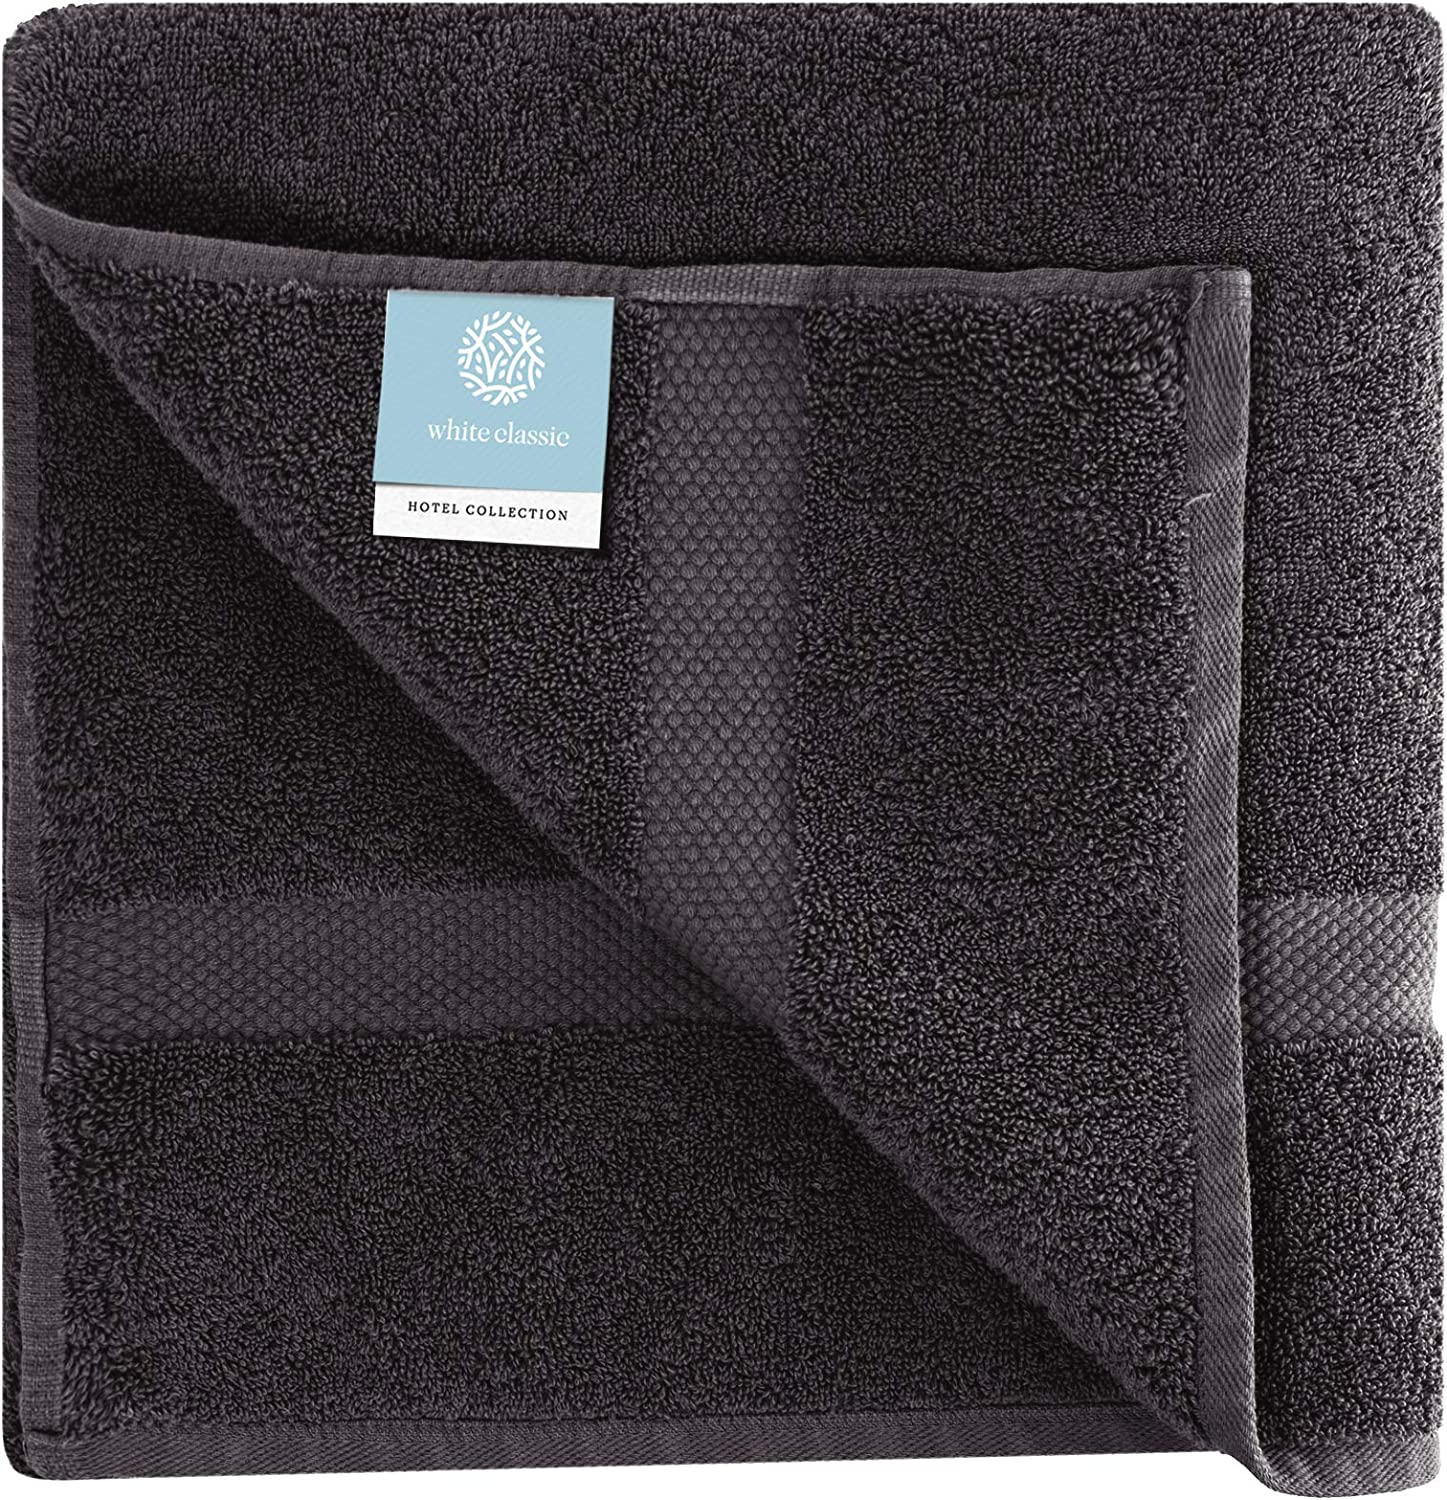 Set of 4 White Classic Luxury Cotton Bath Towels Large Black, 4 27x54 Inch | Highly Absorbent Hotel spa Collection Bathroom Towel